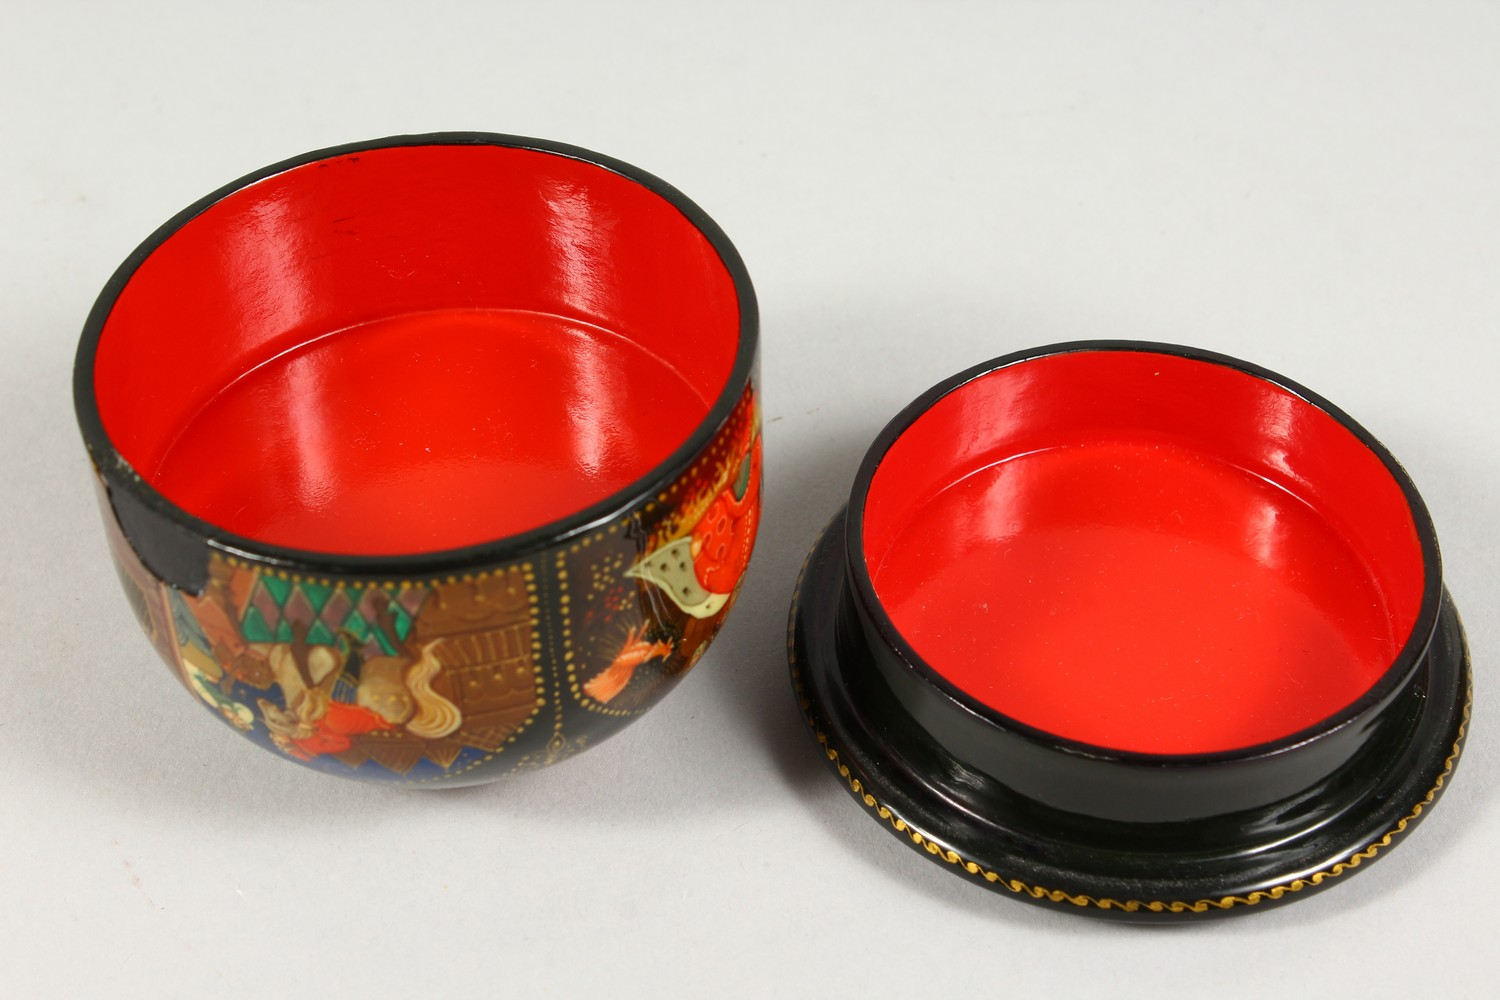 TWO SMALL RUSSIAN CIRCULAR BLACK PAPIER MACHE BOXES AND COVERS. 2.5ins diameter. - Image 12 of 12